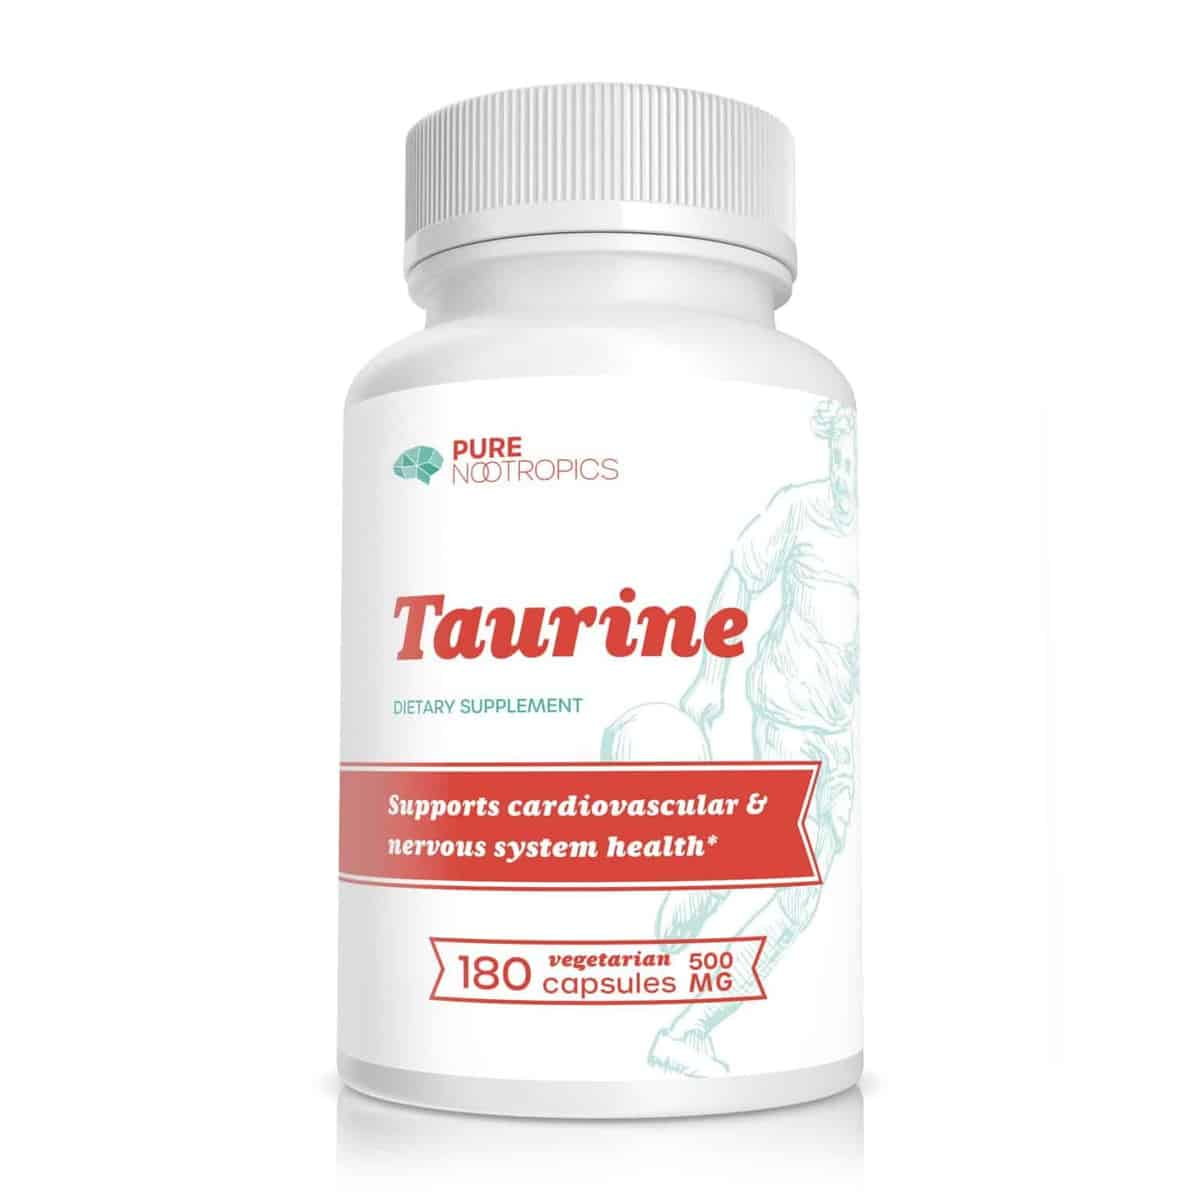 Taurine: Nootropic Benefits, Effects, Dosage, And More